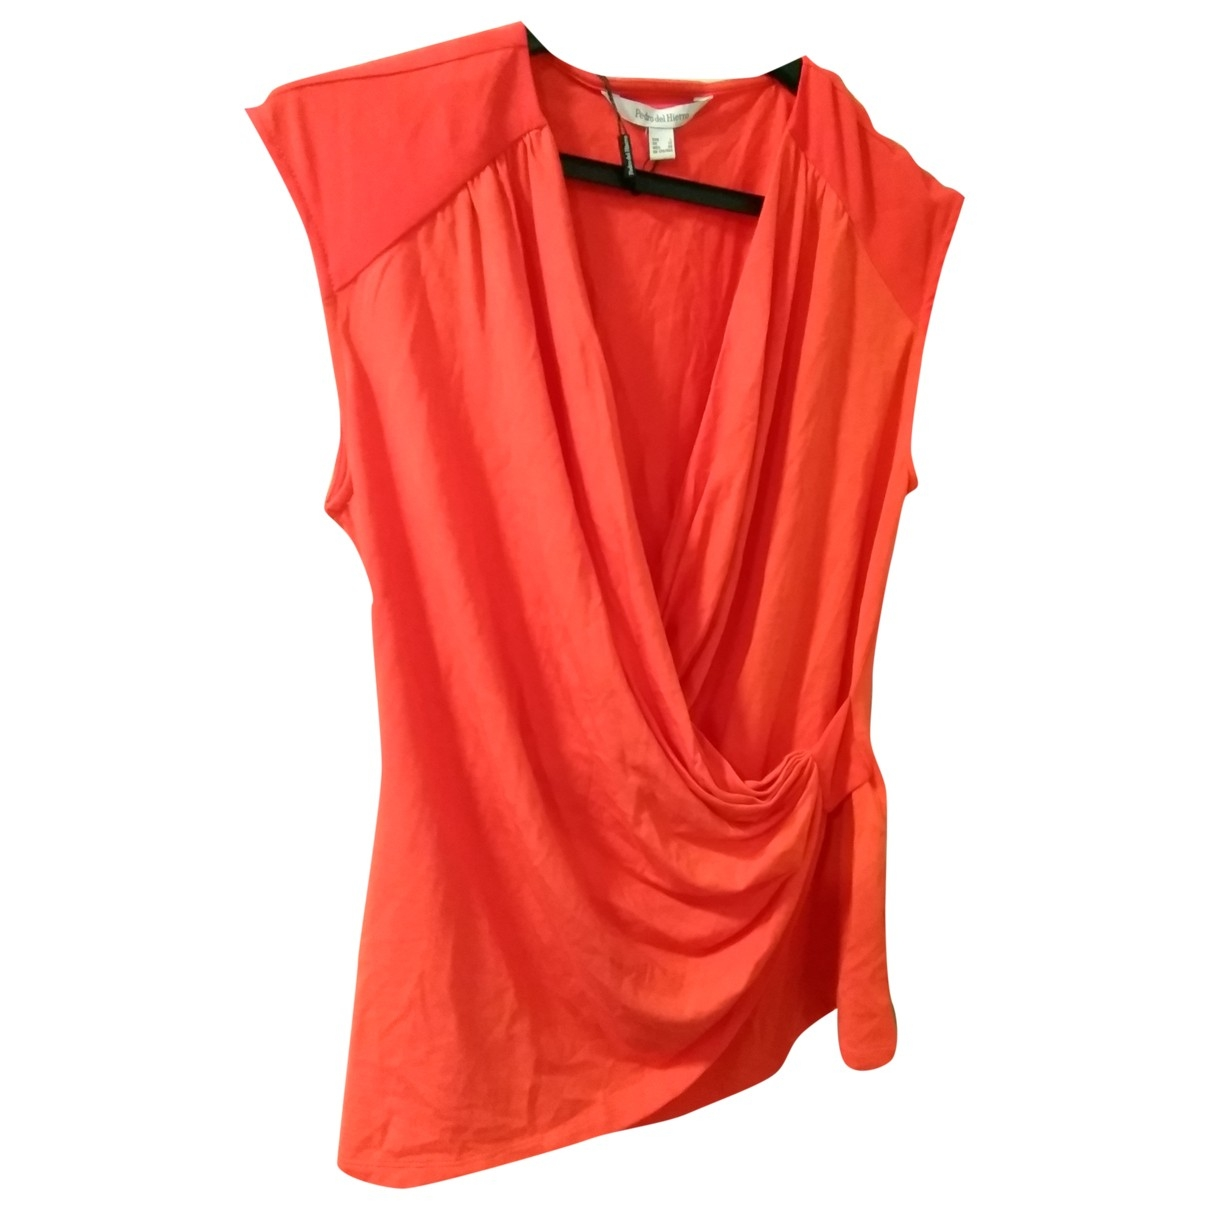 Pedro Del Hierro \N Top in  Rot Polyester